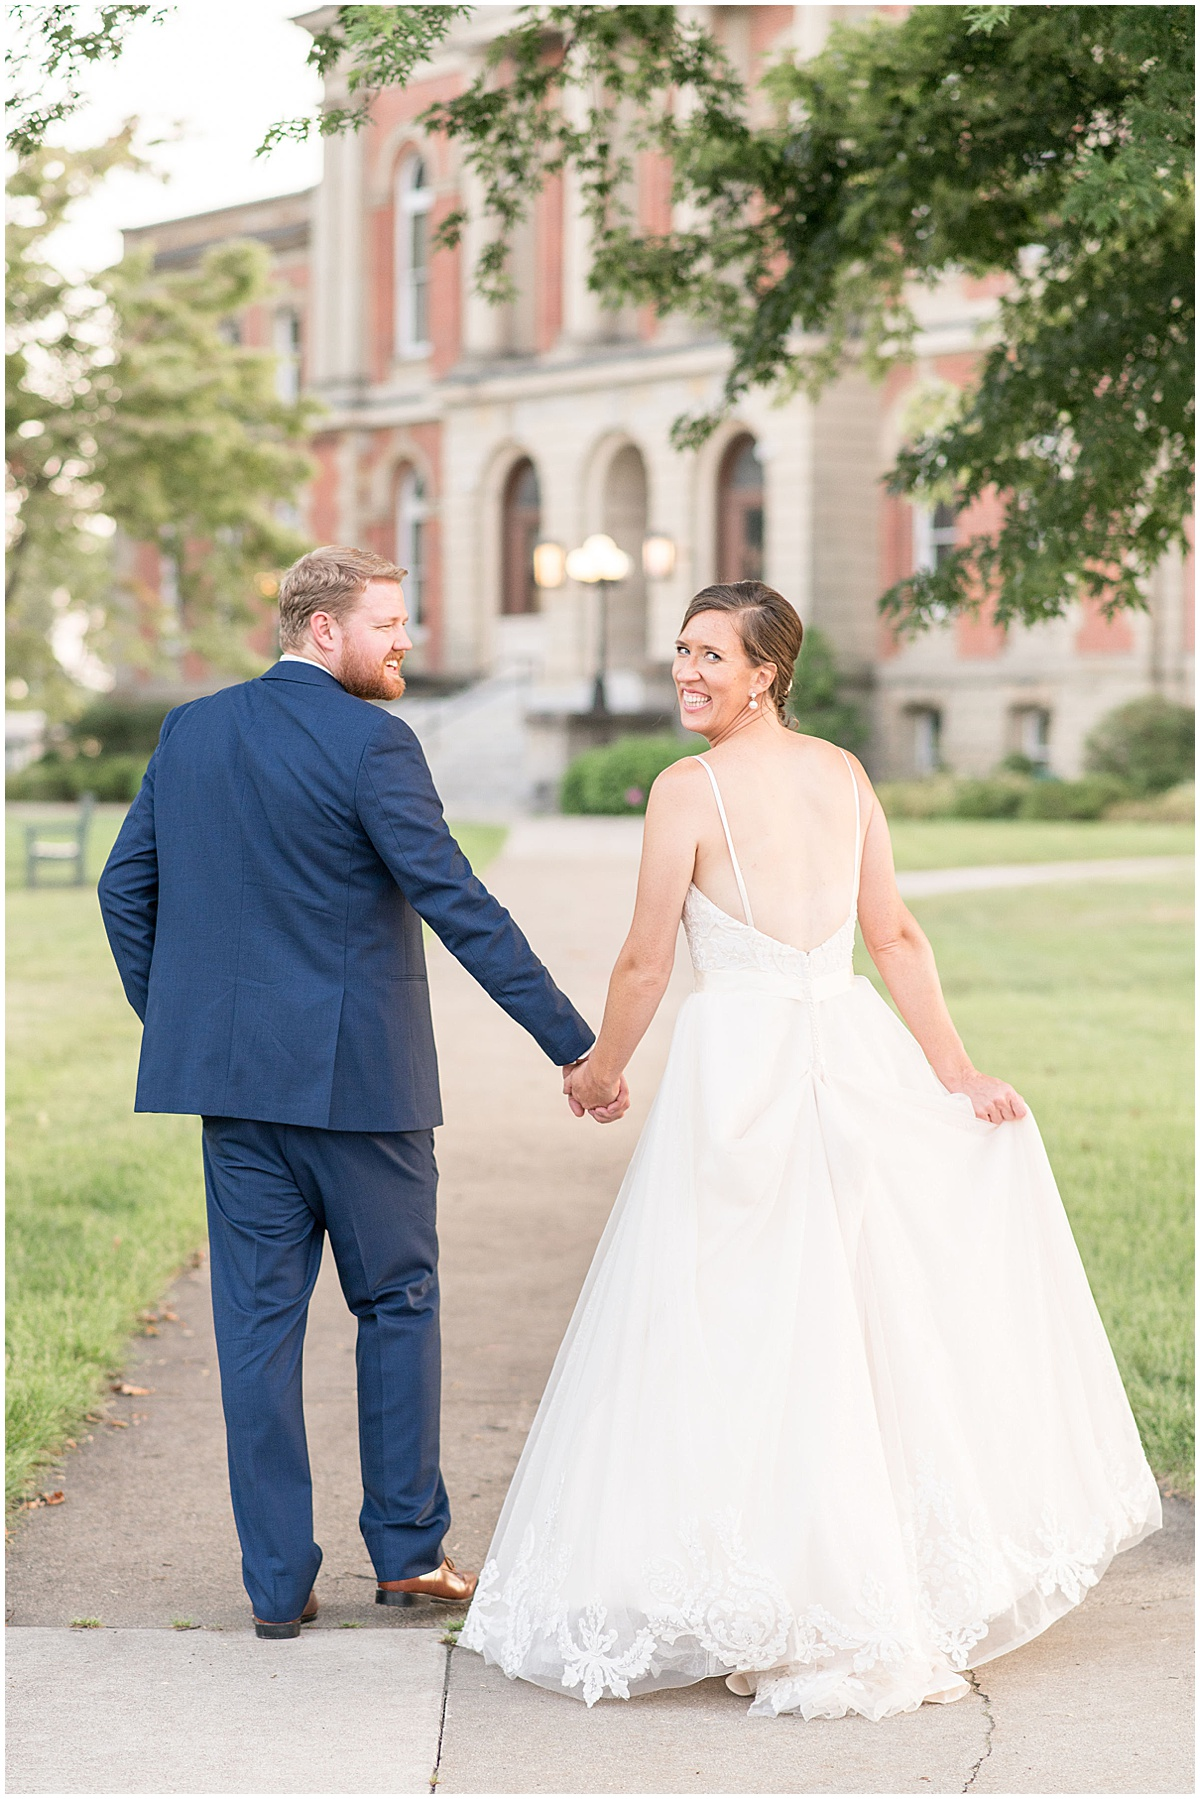 Just married photos at Spohn Ballroom wedding in Goshen, Indiana by Victoria Rayburn Photography